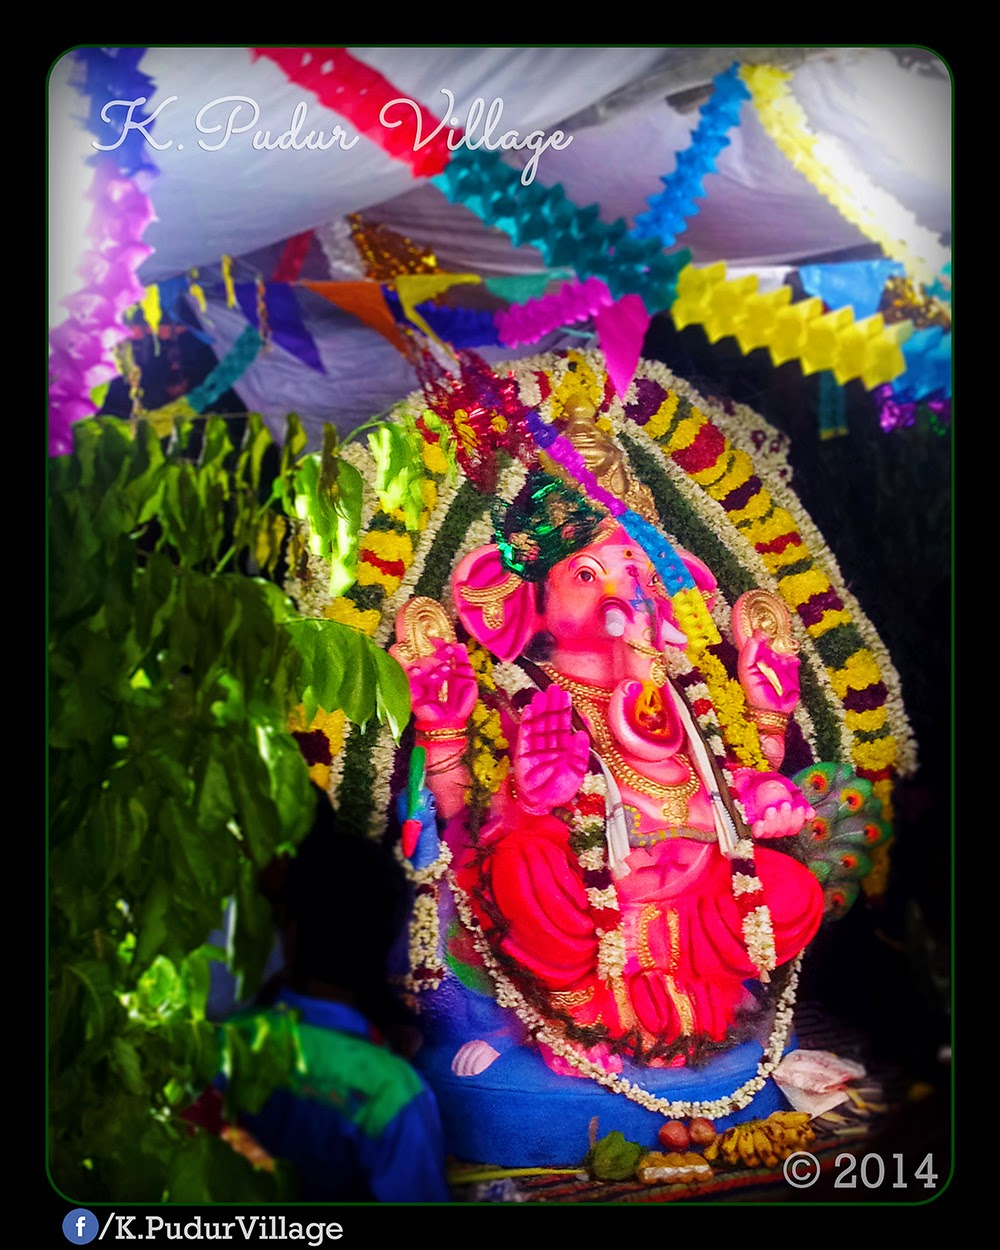 K.Pudur Village Vinayaka Chaturthi festival celebration 2014 (All his devotees during this festival is starting on the puja...)